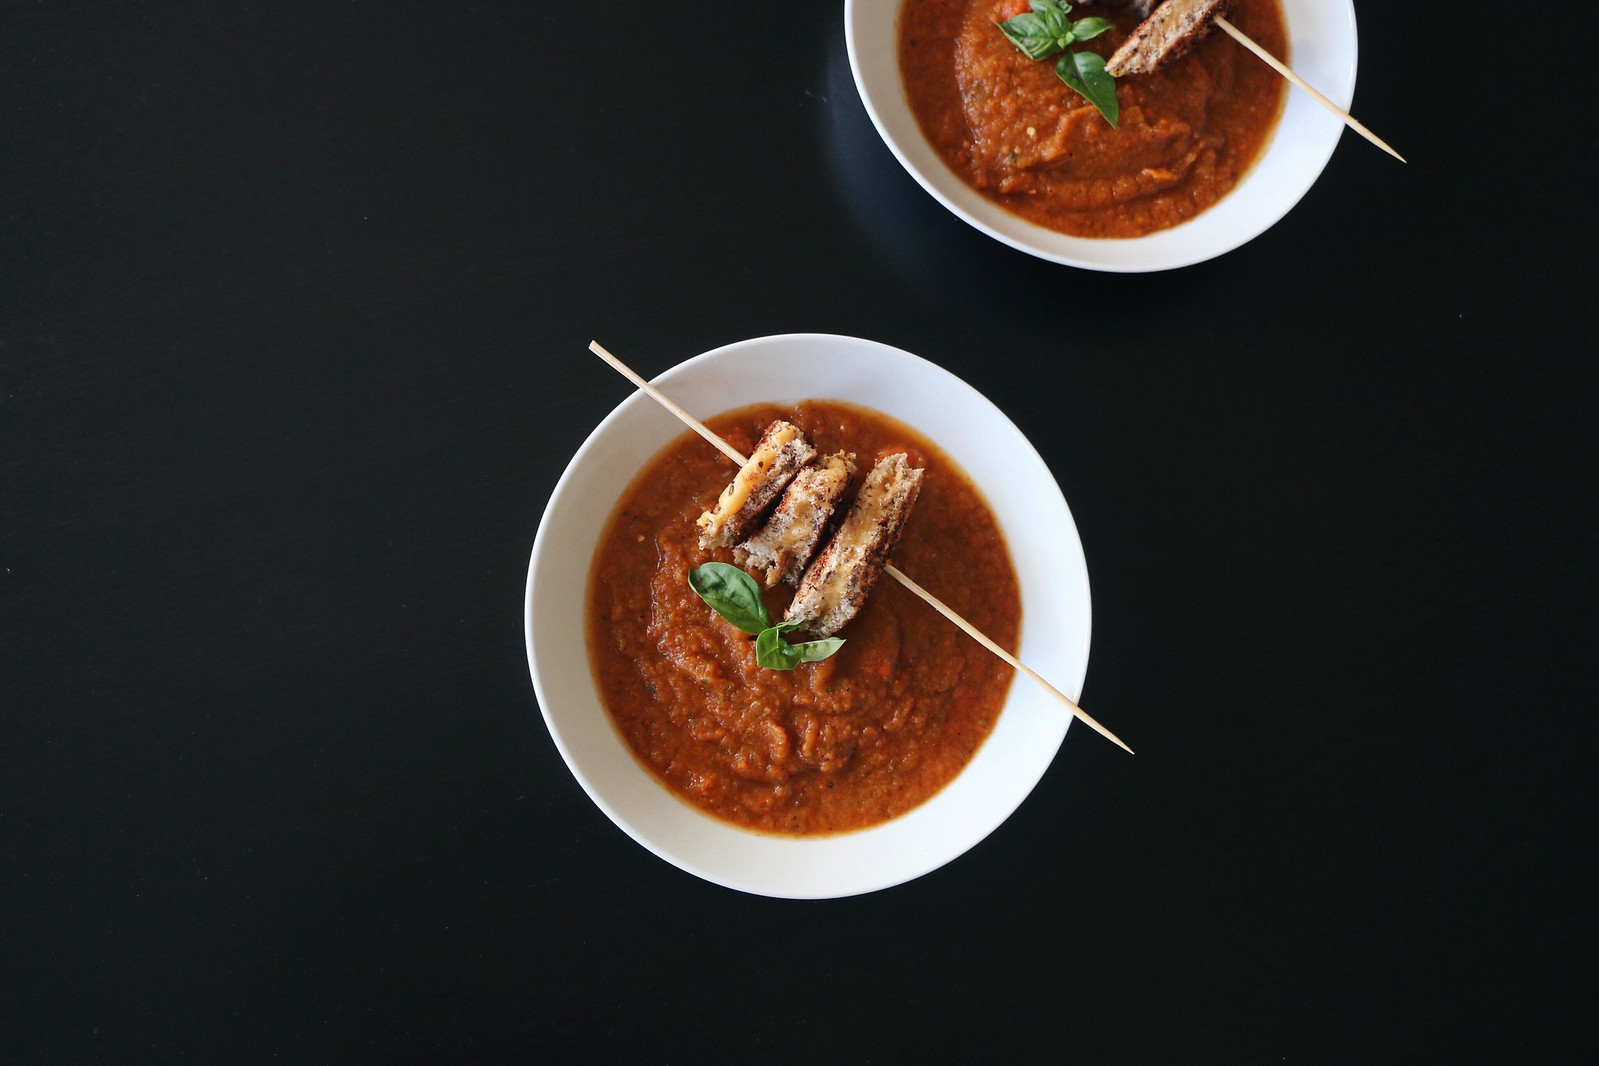 tomato soup & grilled cheese skewer 1